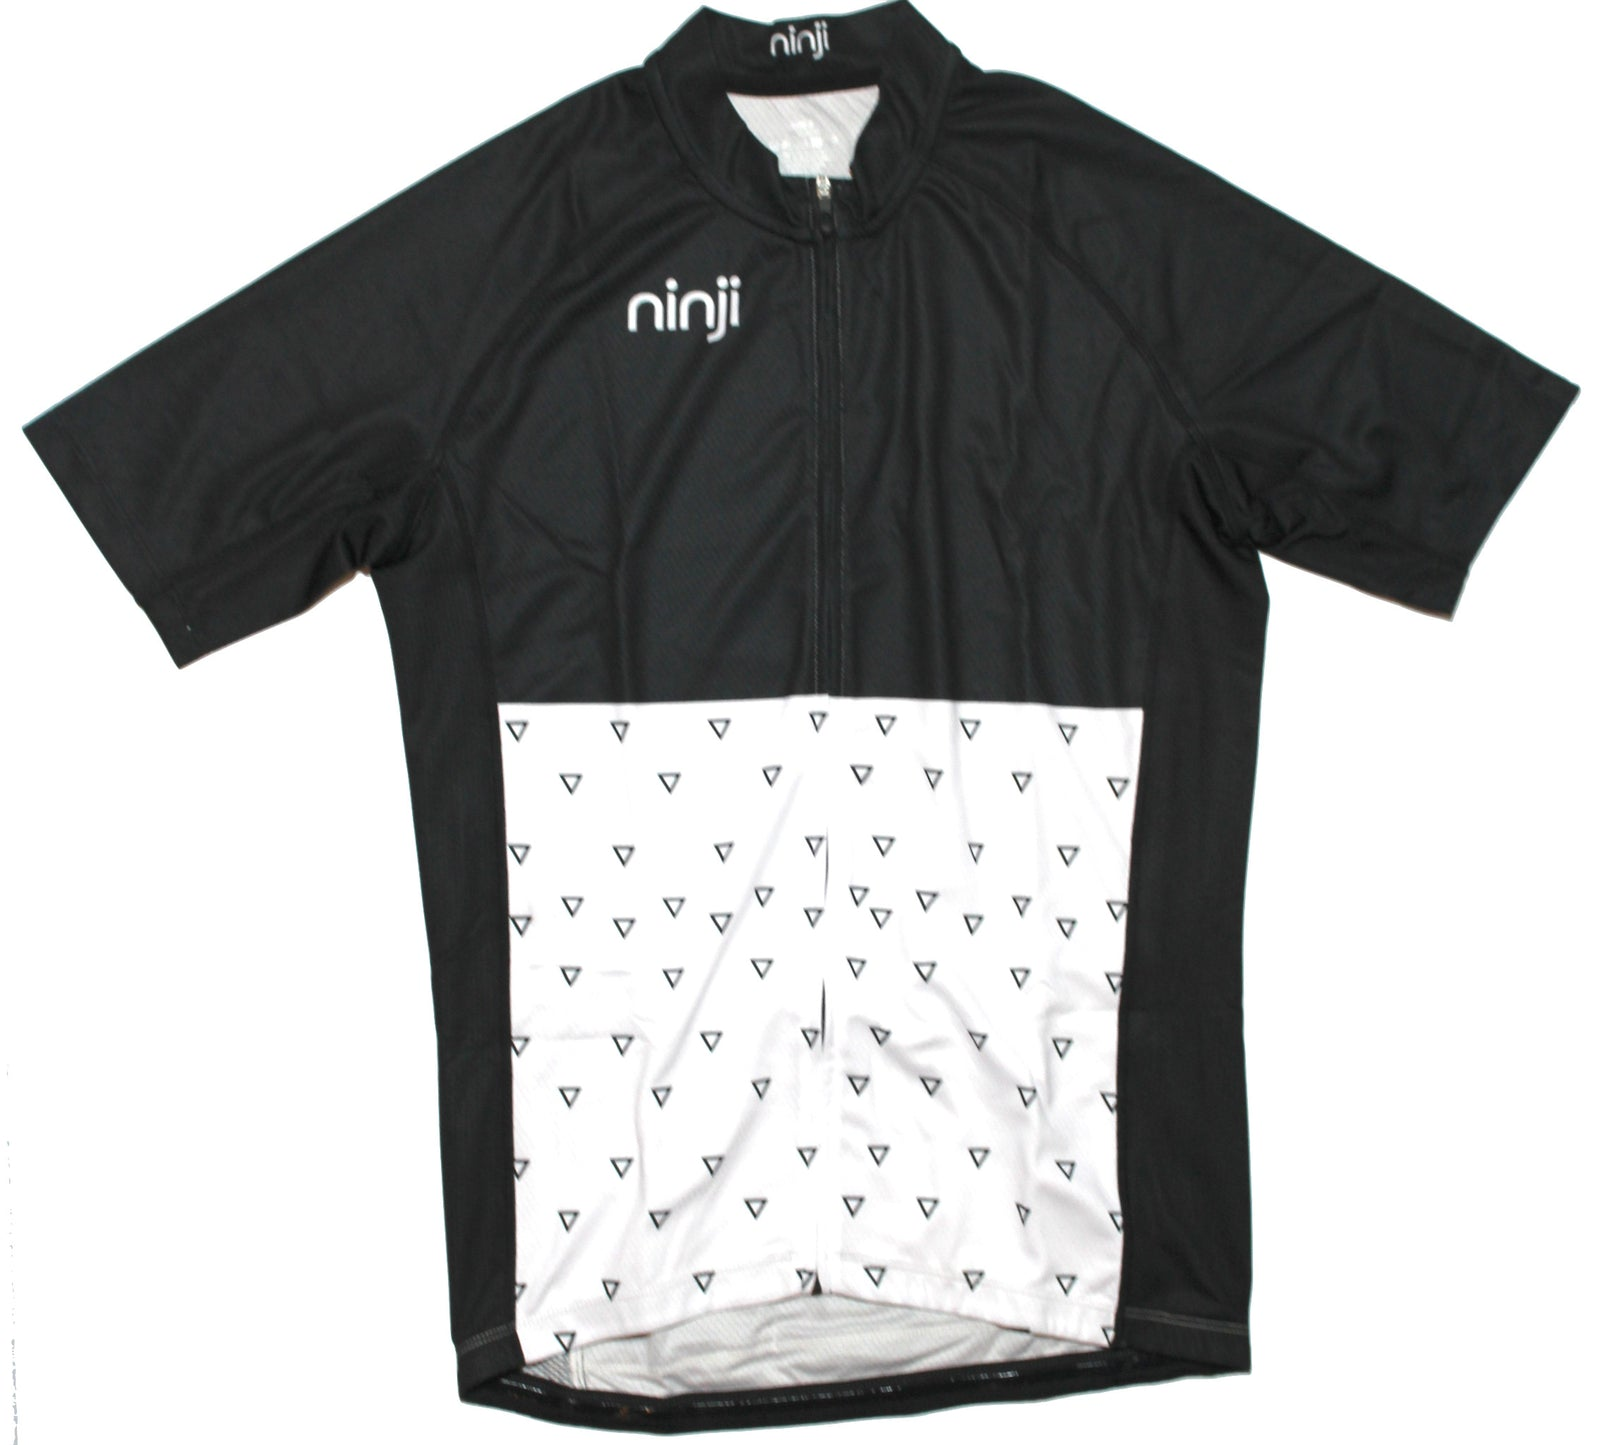 MENS SS JERSEY - HALF WHITE TRIANGLES